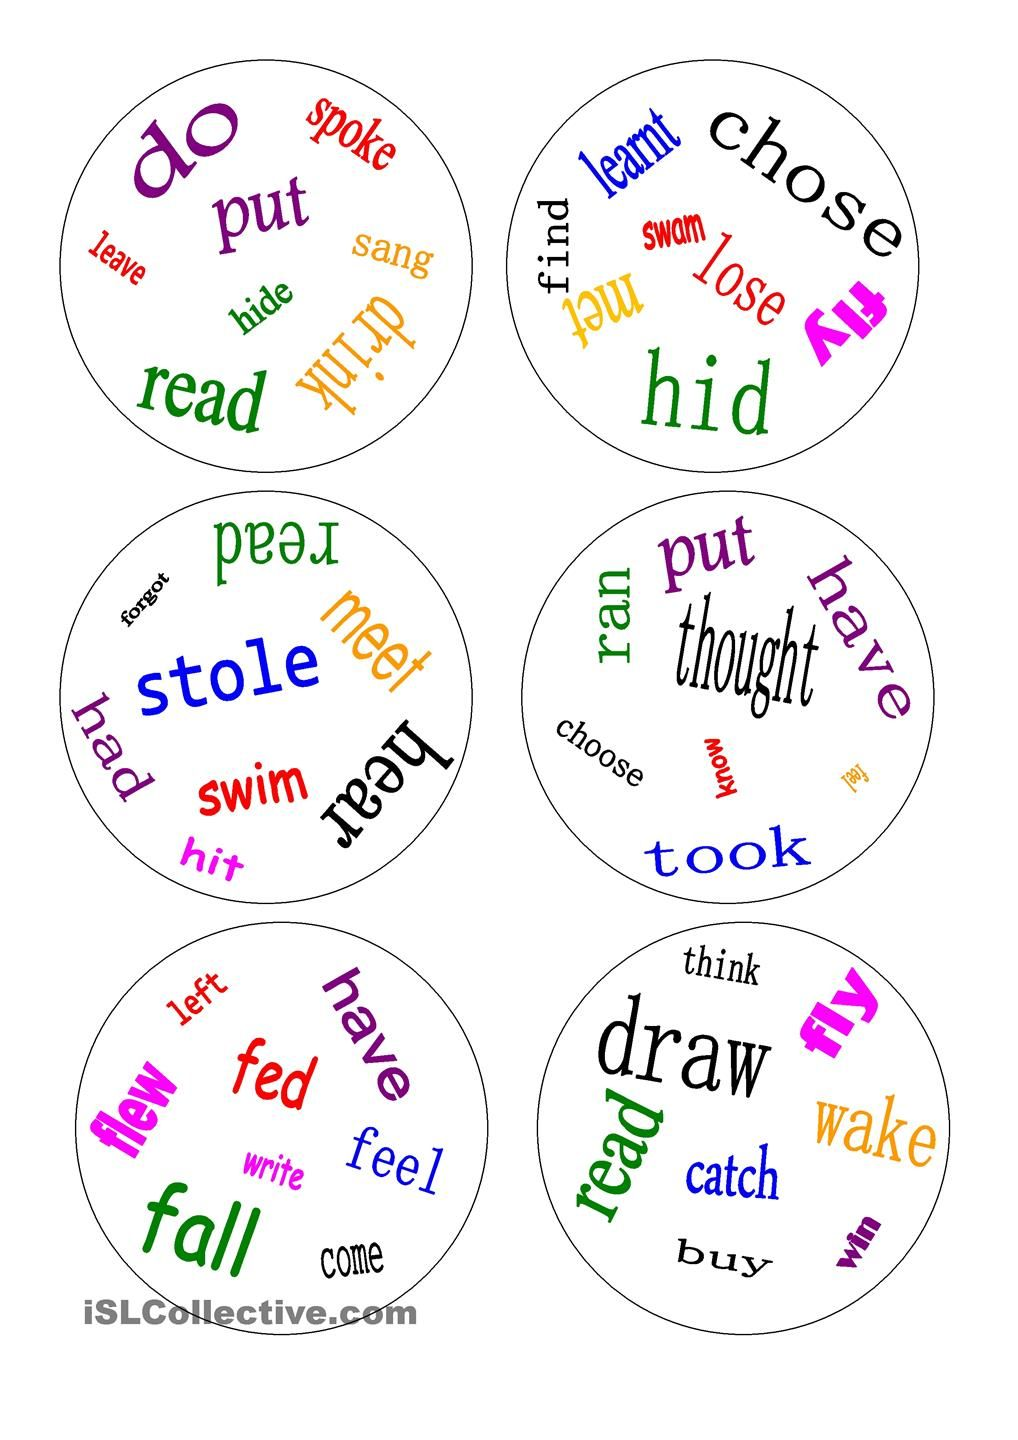 Worksheets For Fourth Grade Pdf Printable Irregular Verbs Wheel   Pinteres Life Cycle Of A Grasshopper Worksheet Excel with Sentence Structure Worksheets High School Excel Dobble  Irregular Verbs  A Game Squid Dissection Worksheet